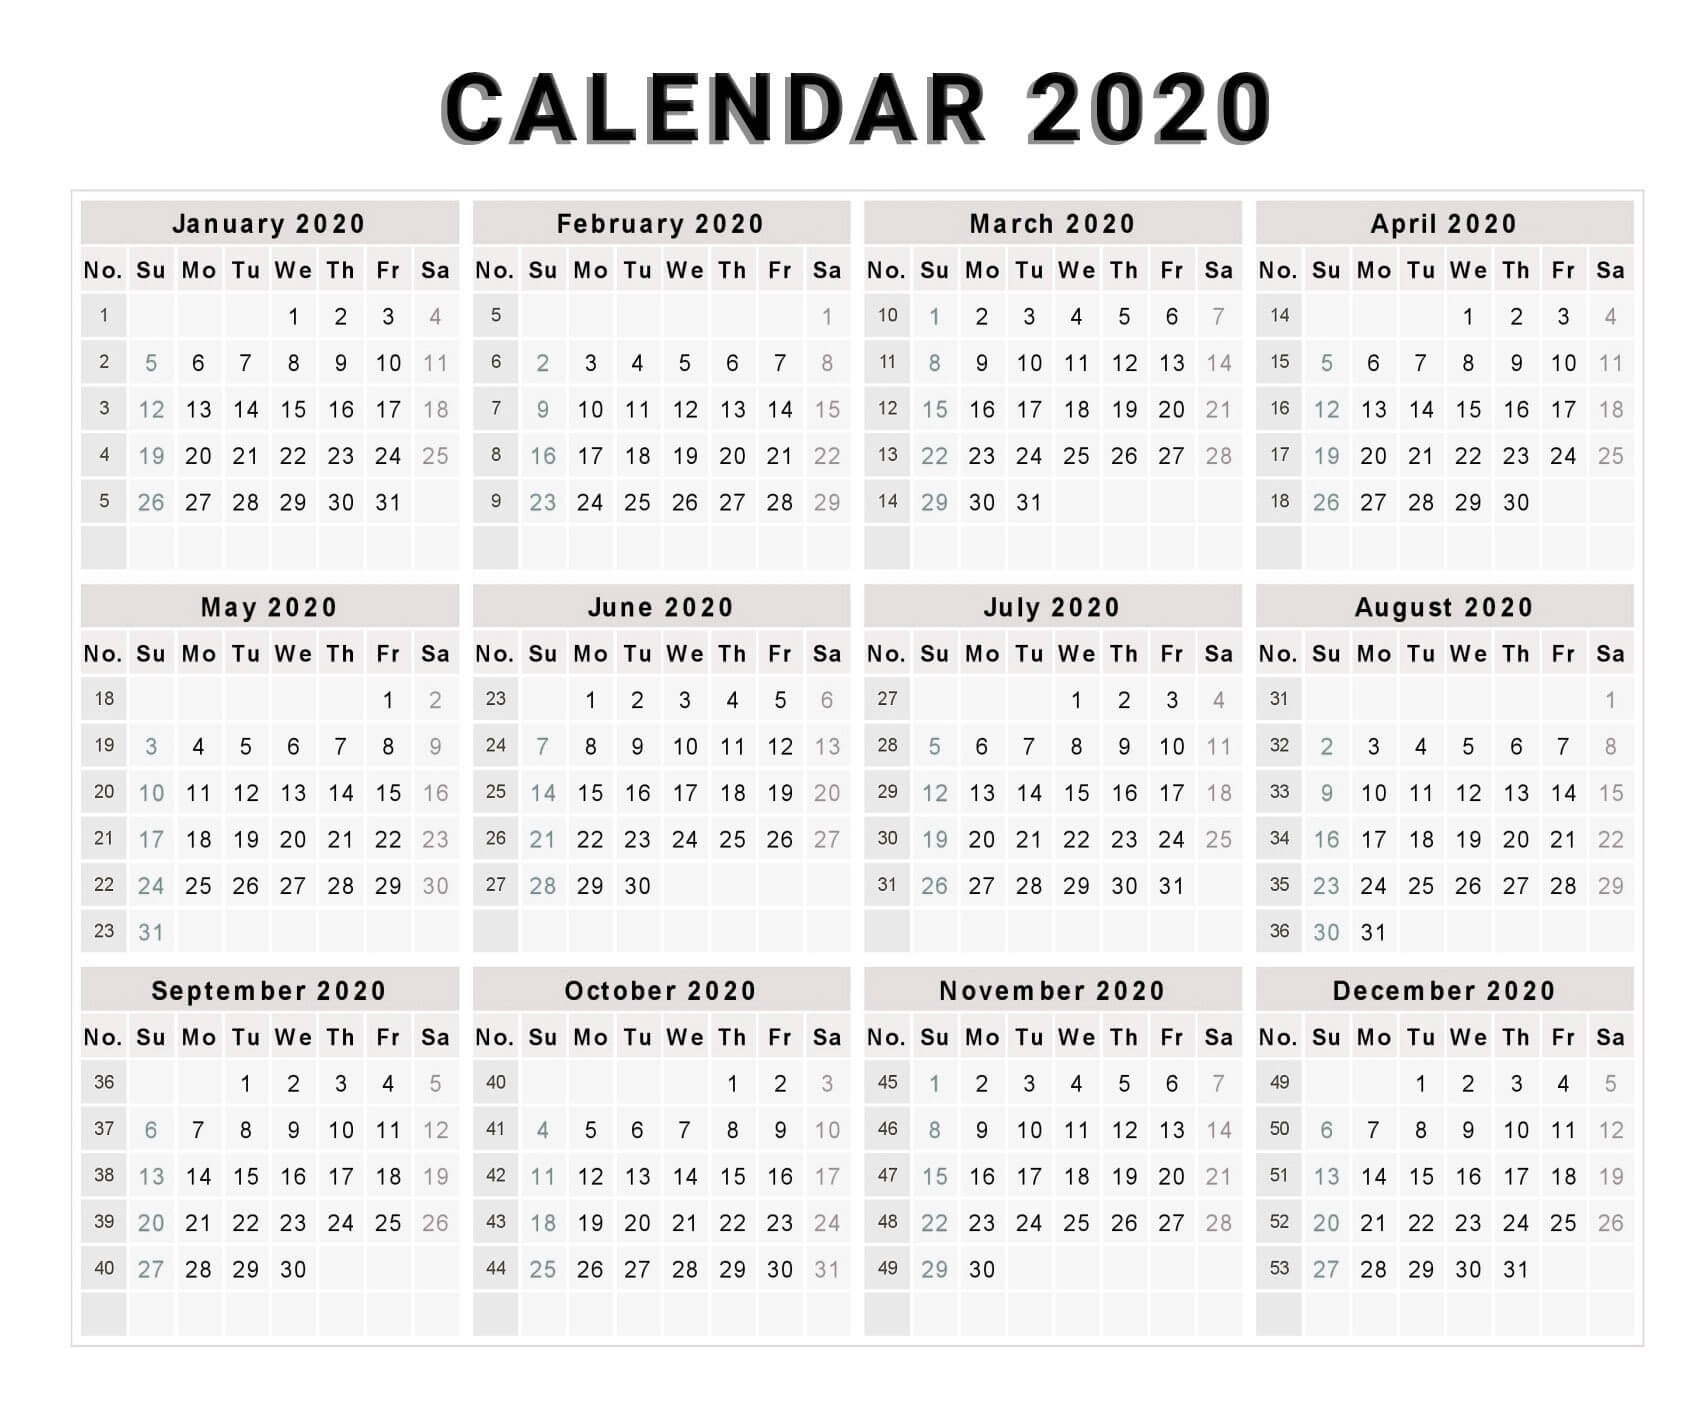 Yearly Calendar With Notes 2020 Pdf - 2019 Calendars For Impressive South African Calendar 2020 Pdf